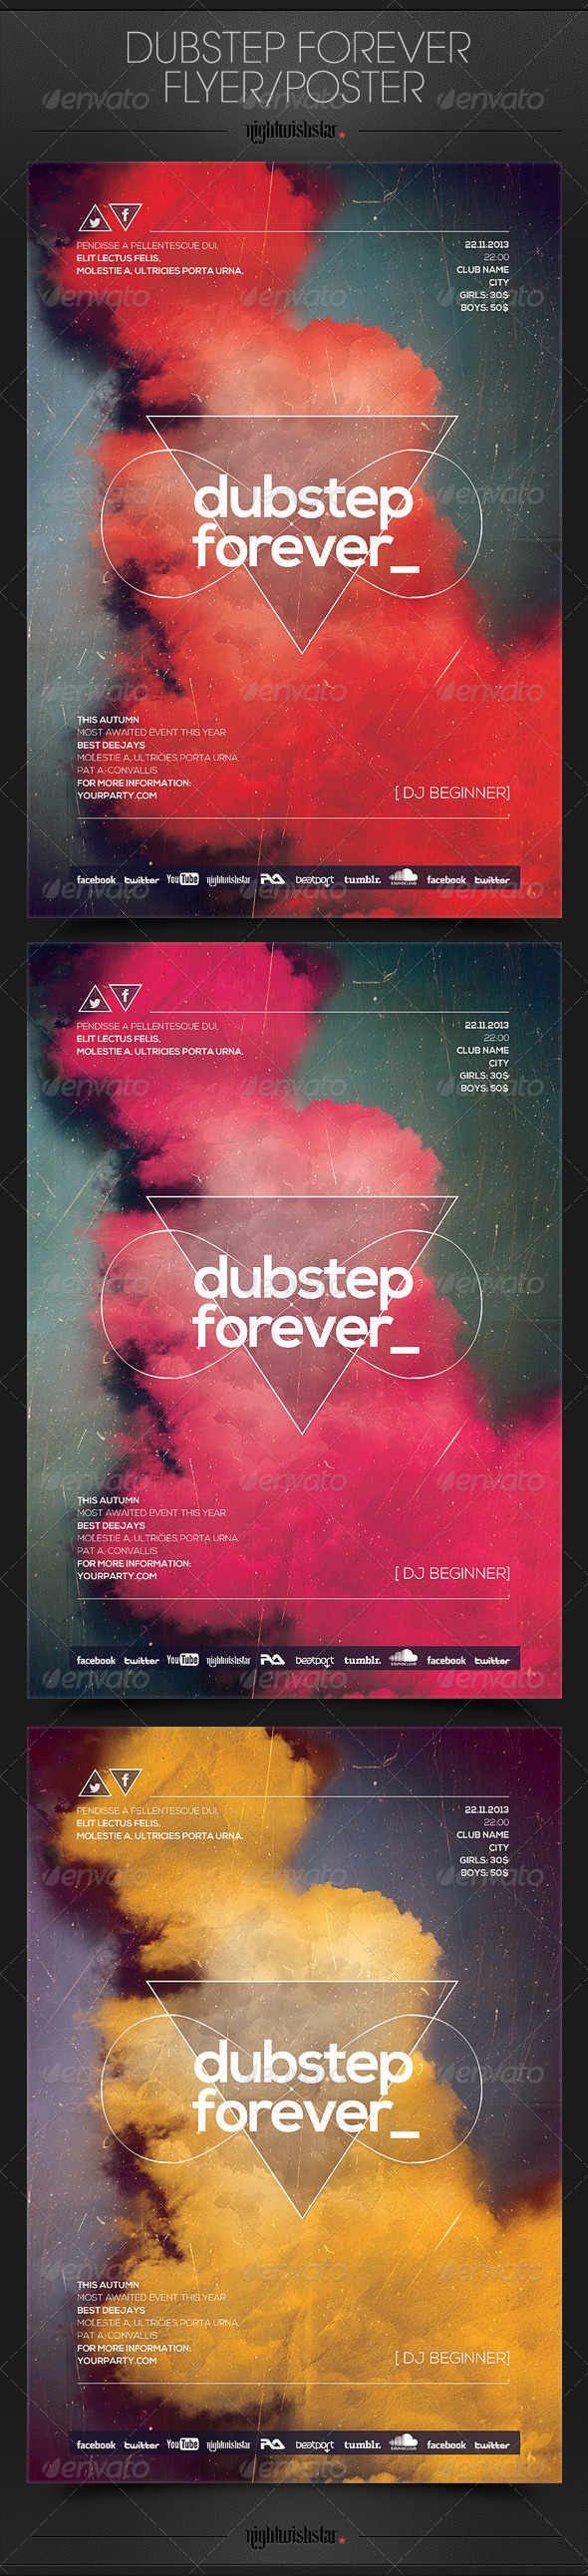 GraphicRiver Dubstep Forever Party Posters Flyers 6554842